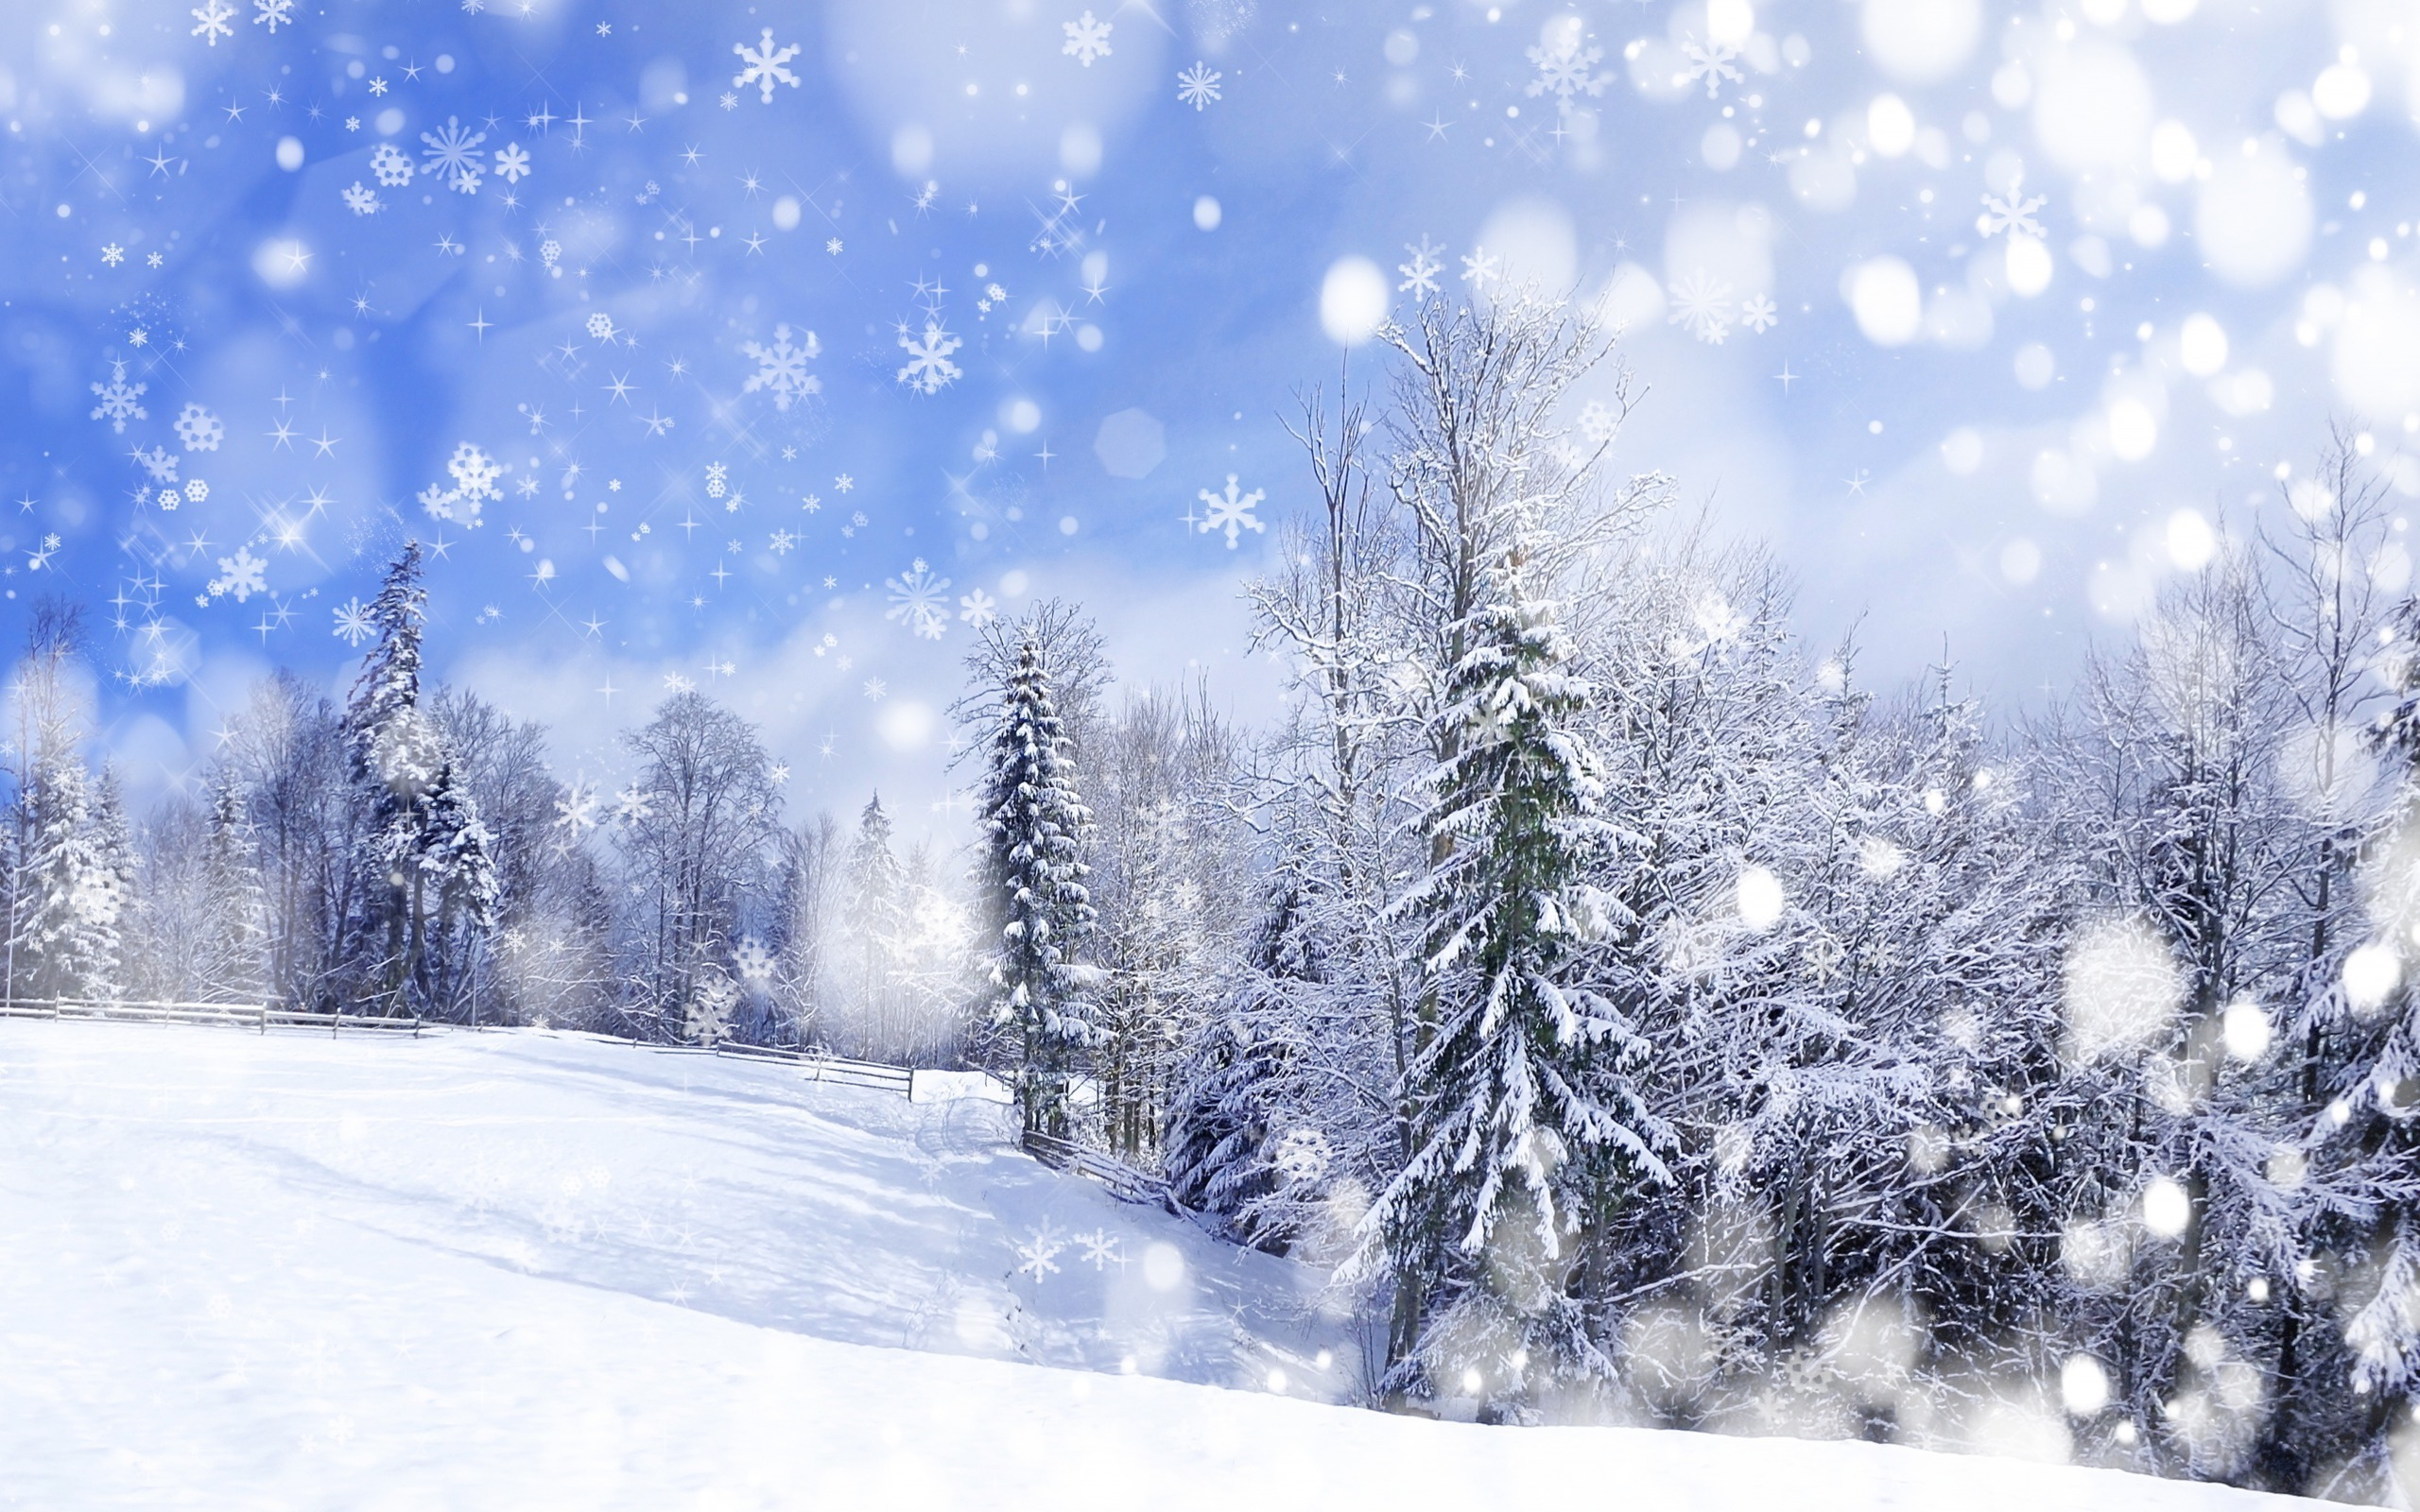 Winter forest scenery